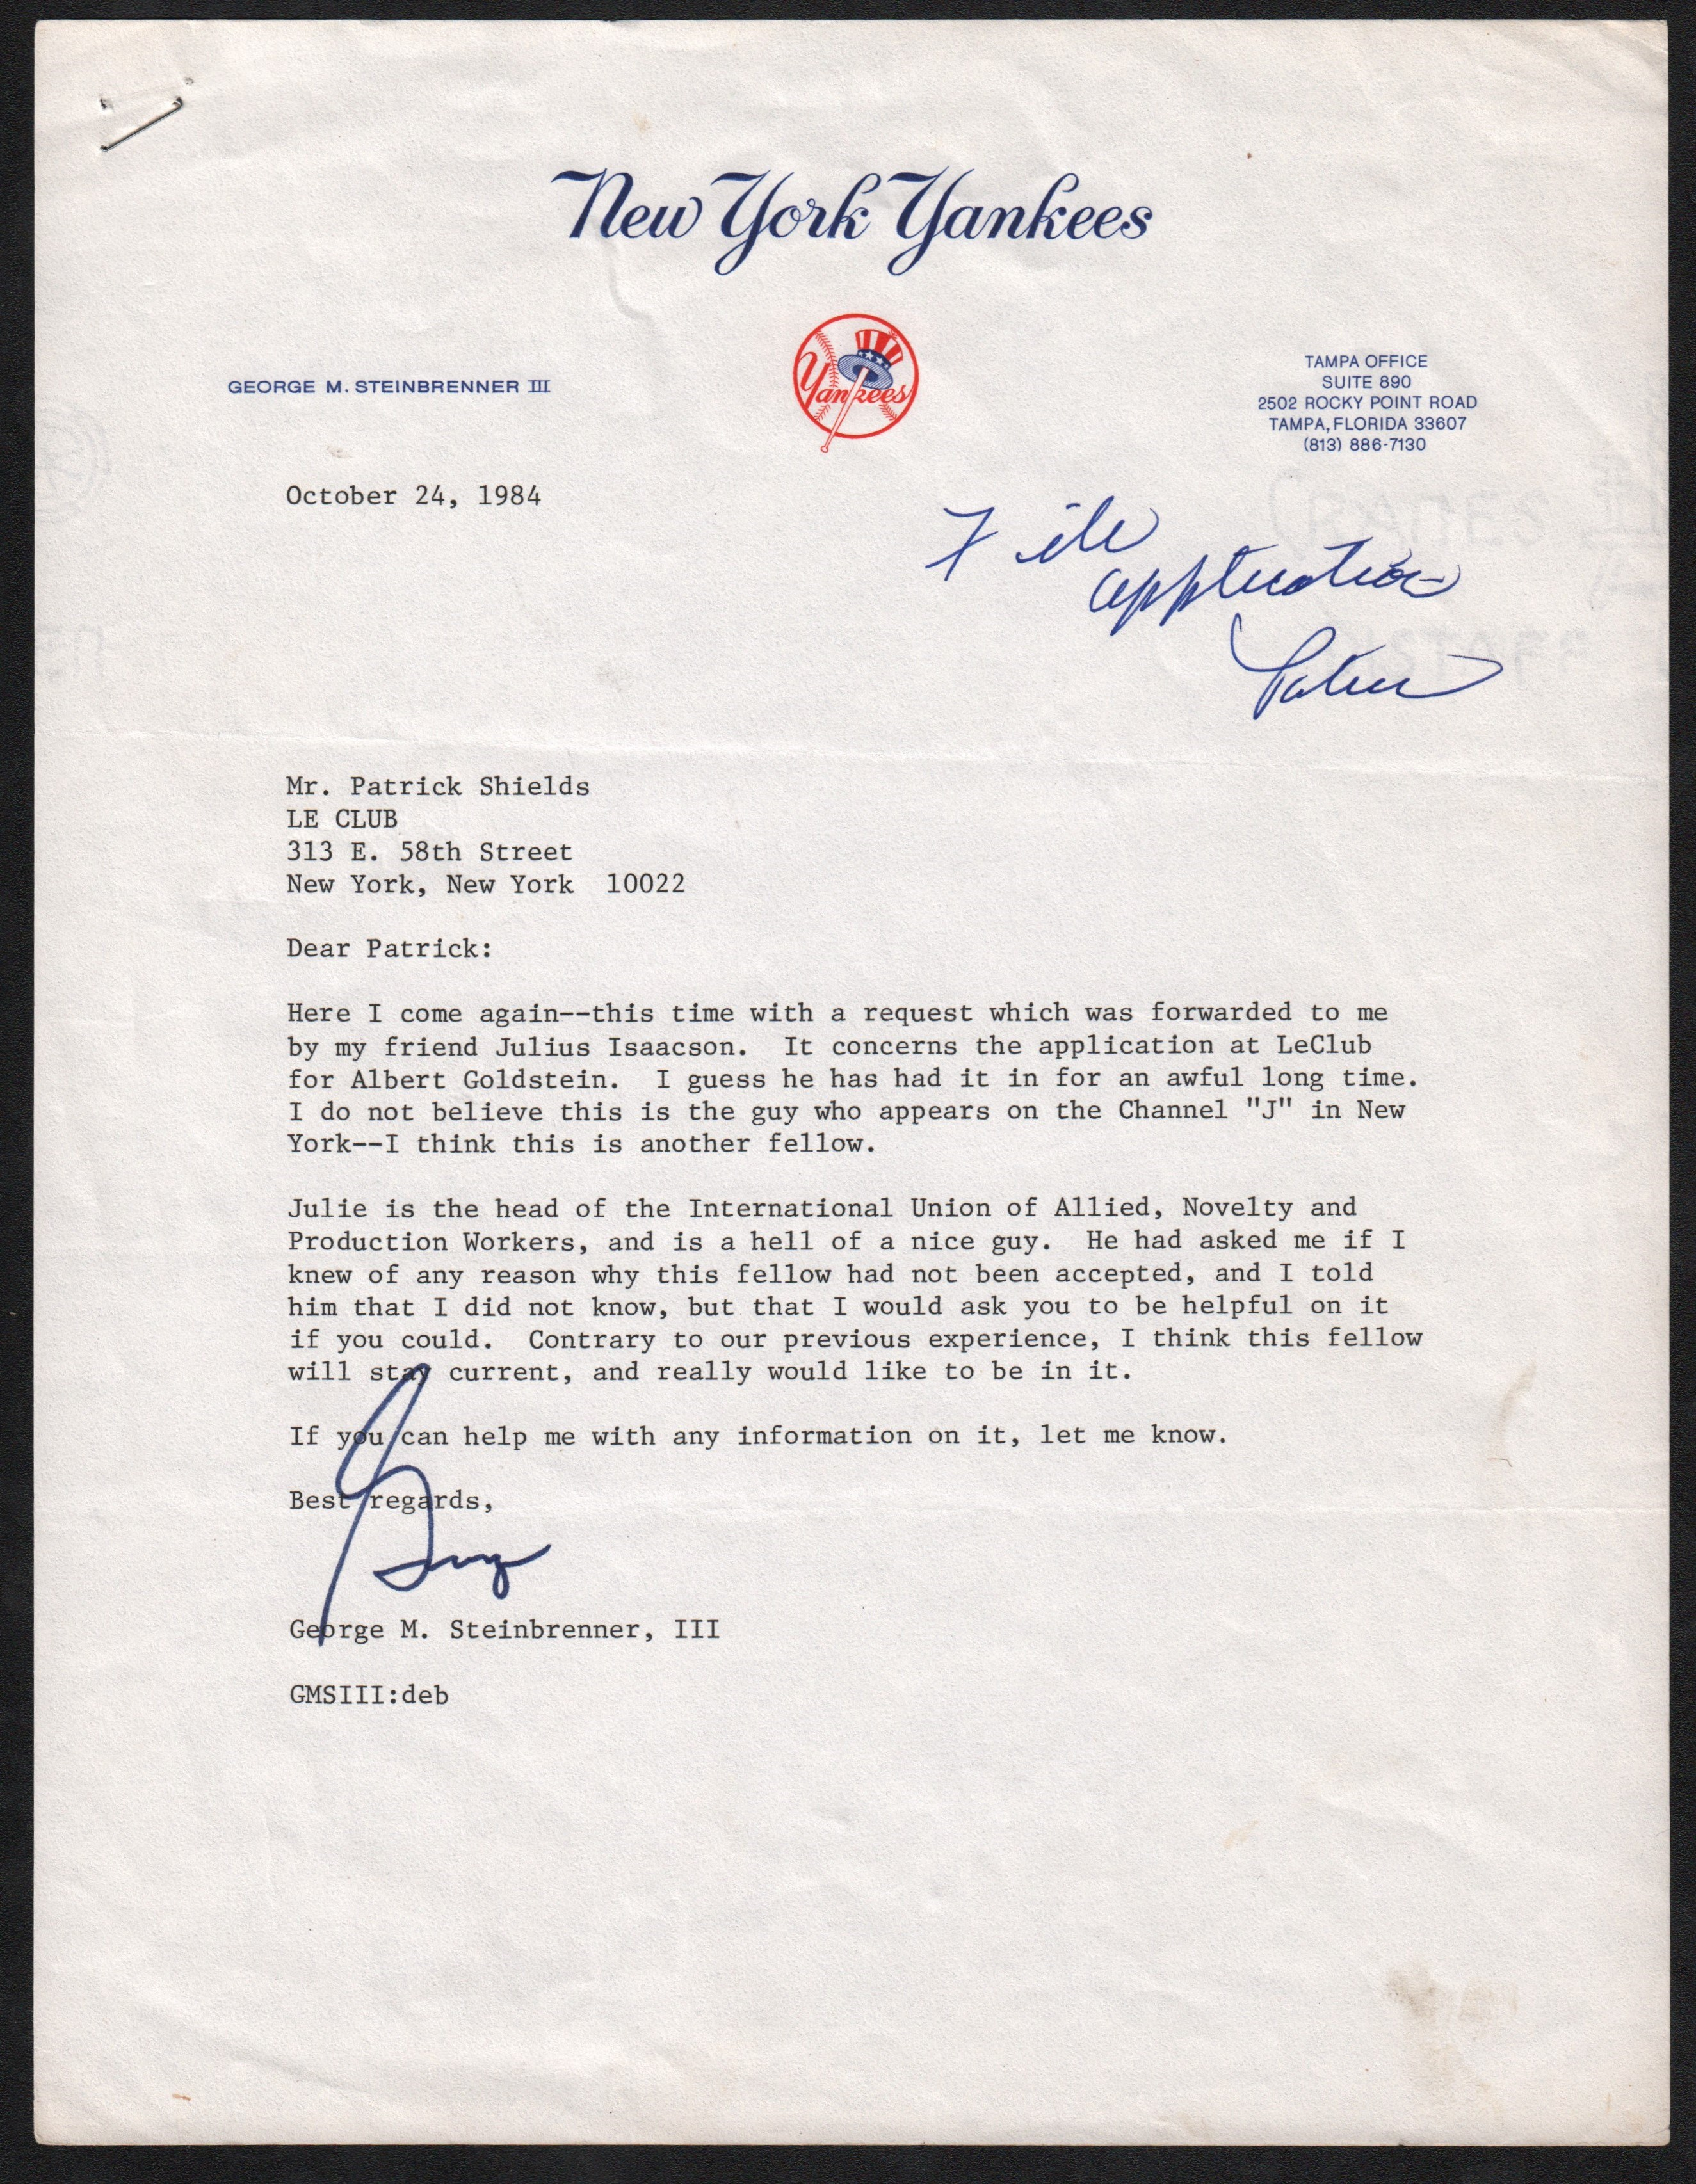 1984 George Steinbrenner Signed Letter on Yankees Stationary